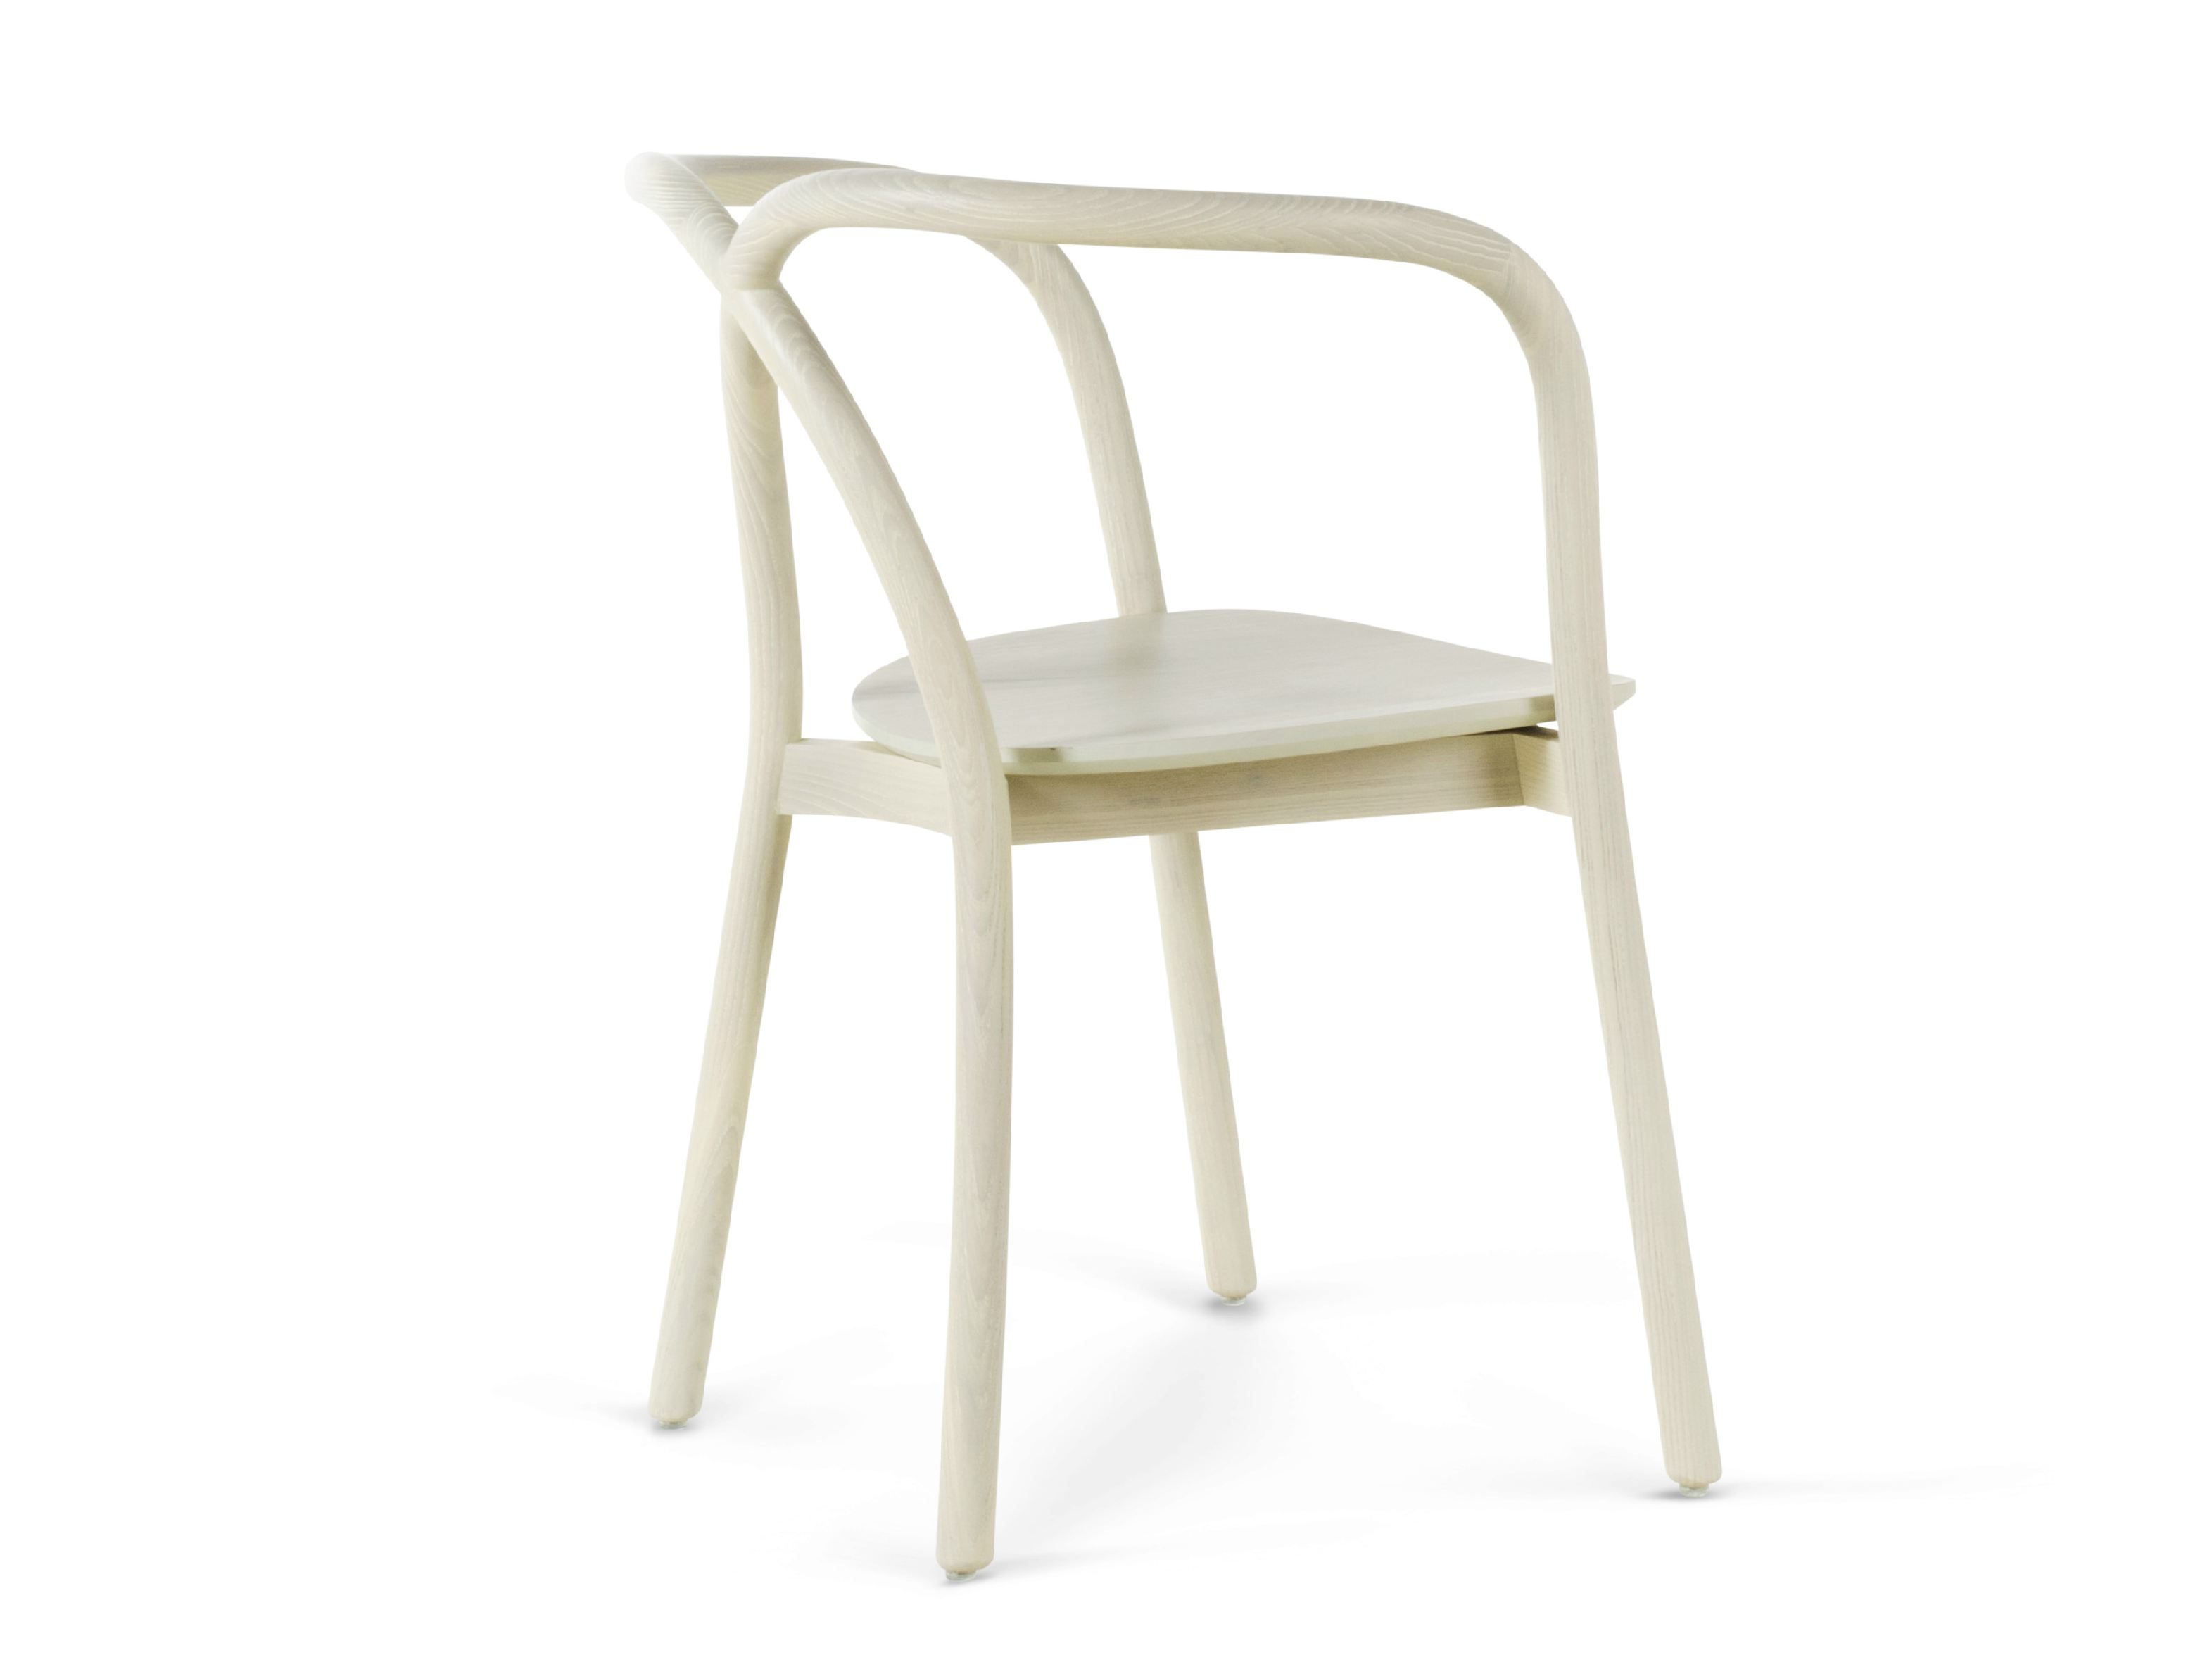 chair design research distressed dining room chairs ming by stellar works neri andhu and